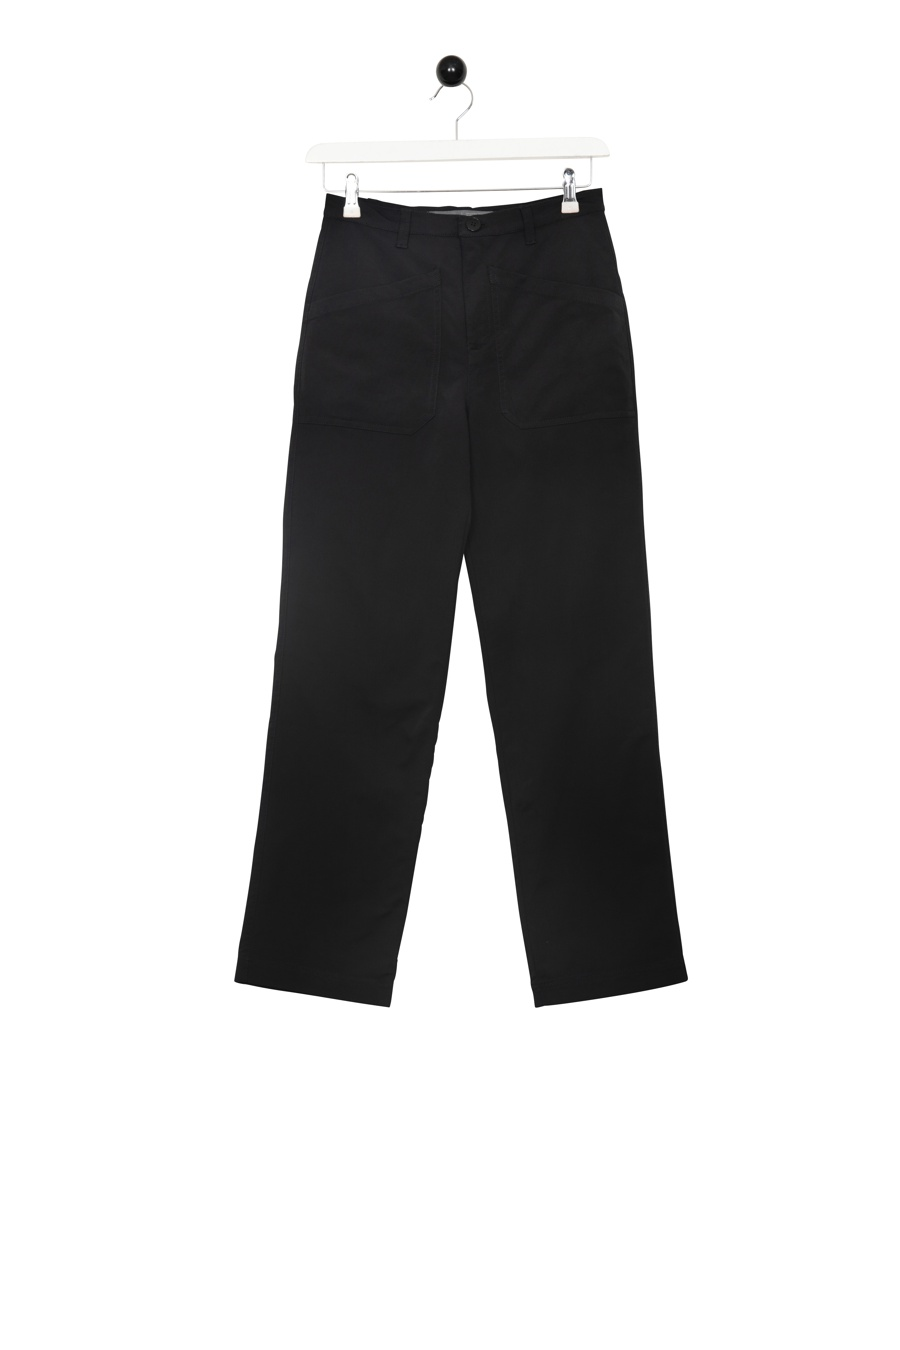 Return Obsidian Trousers